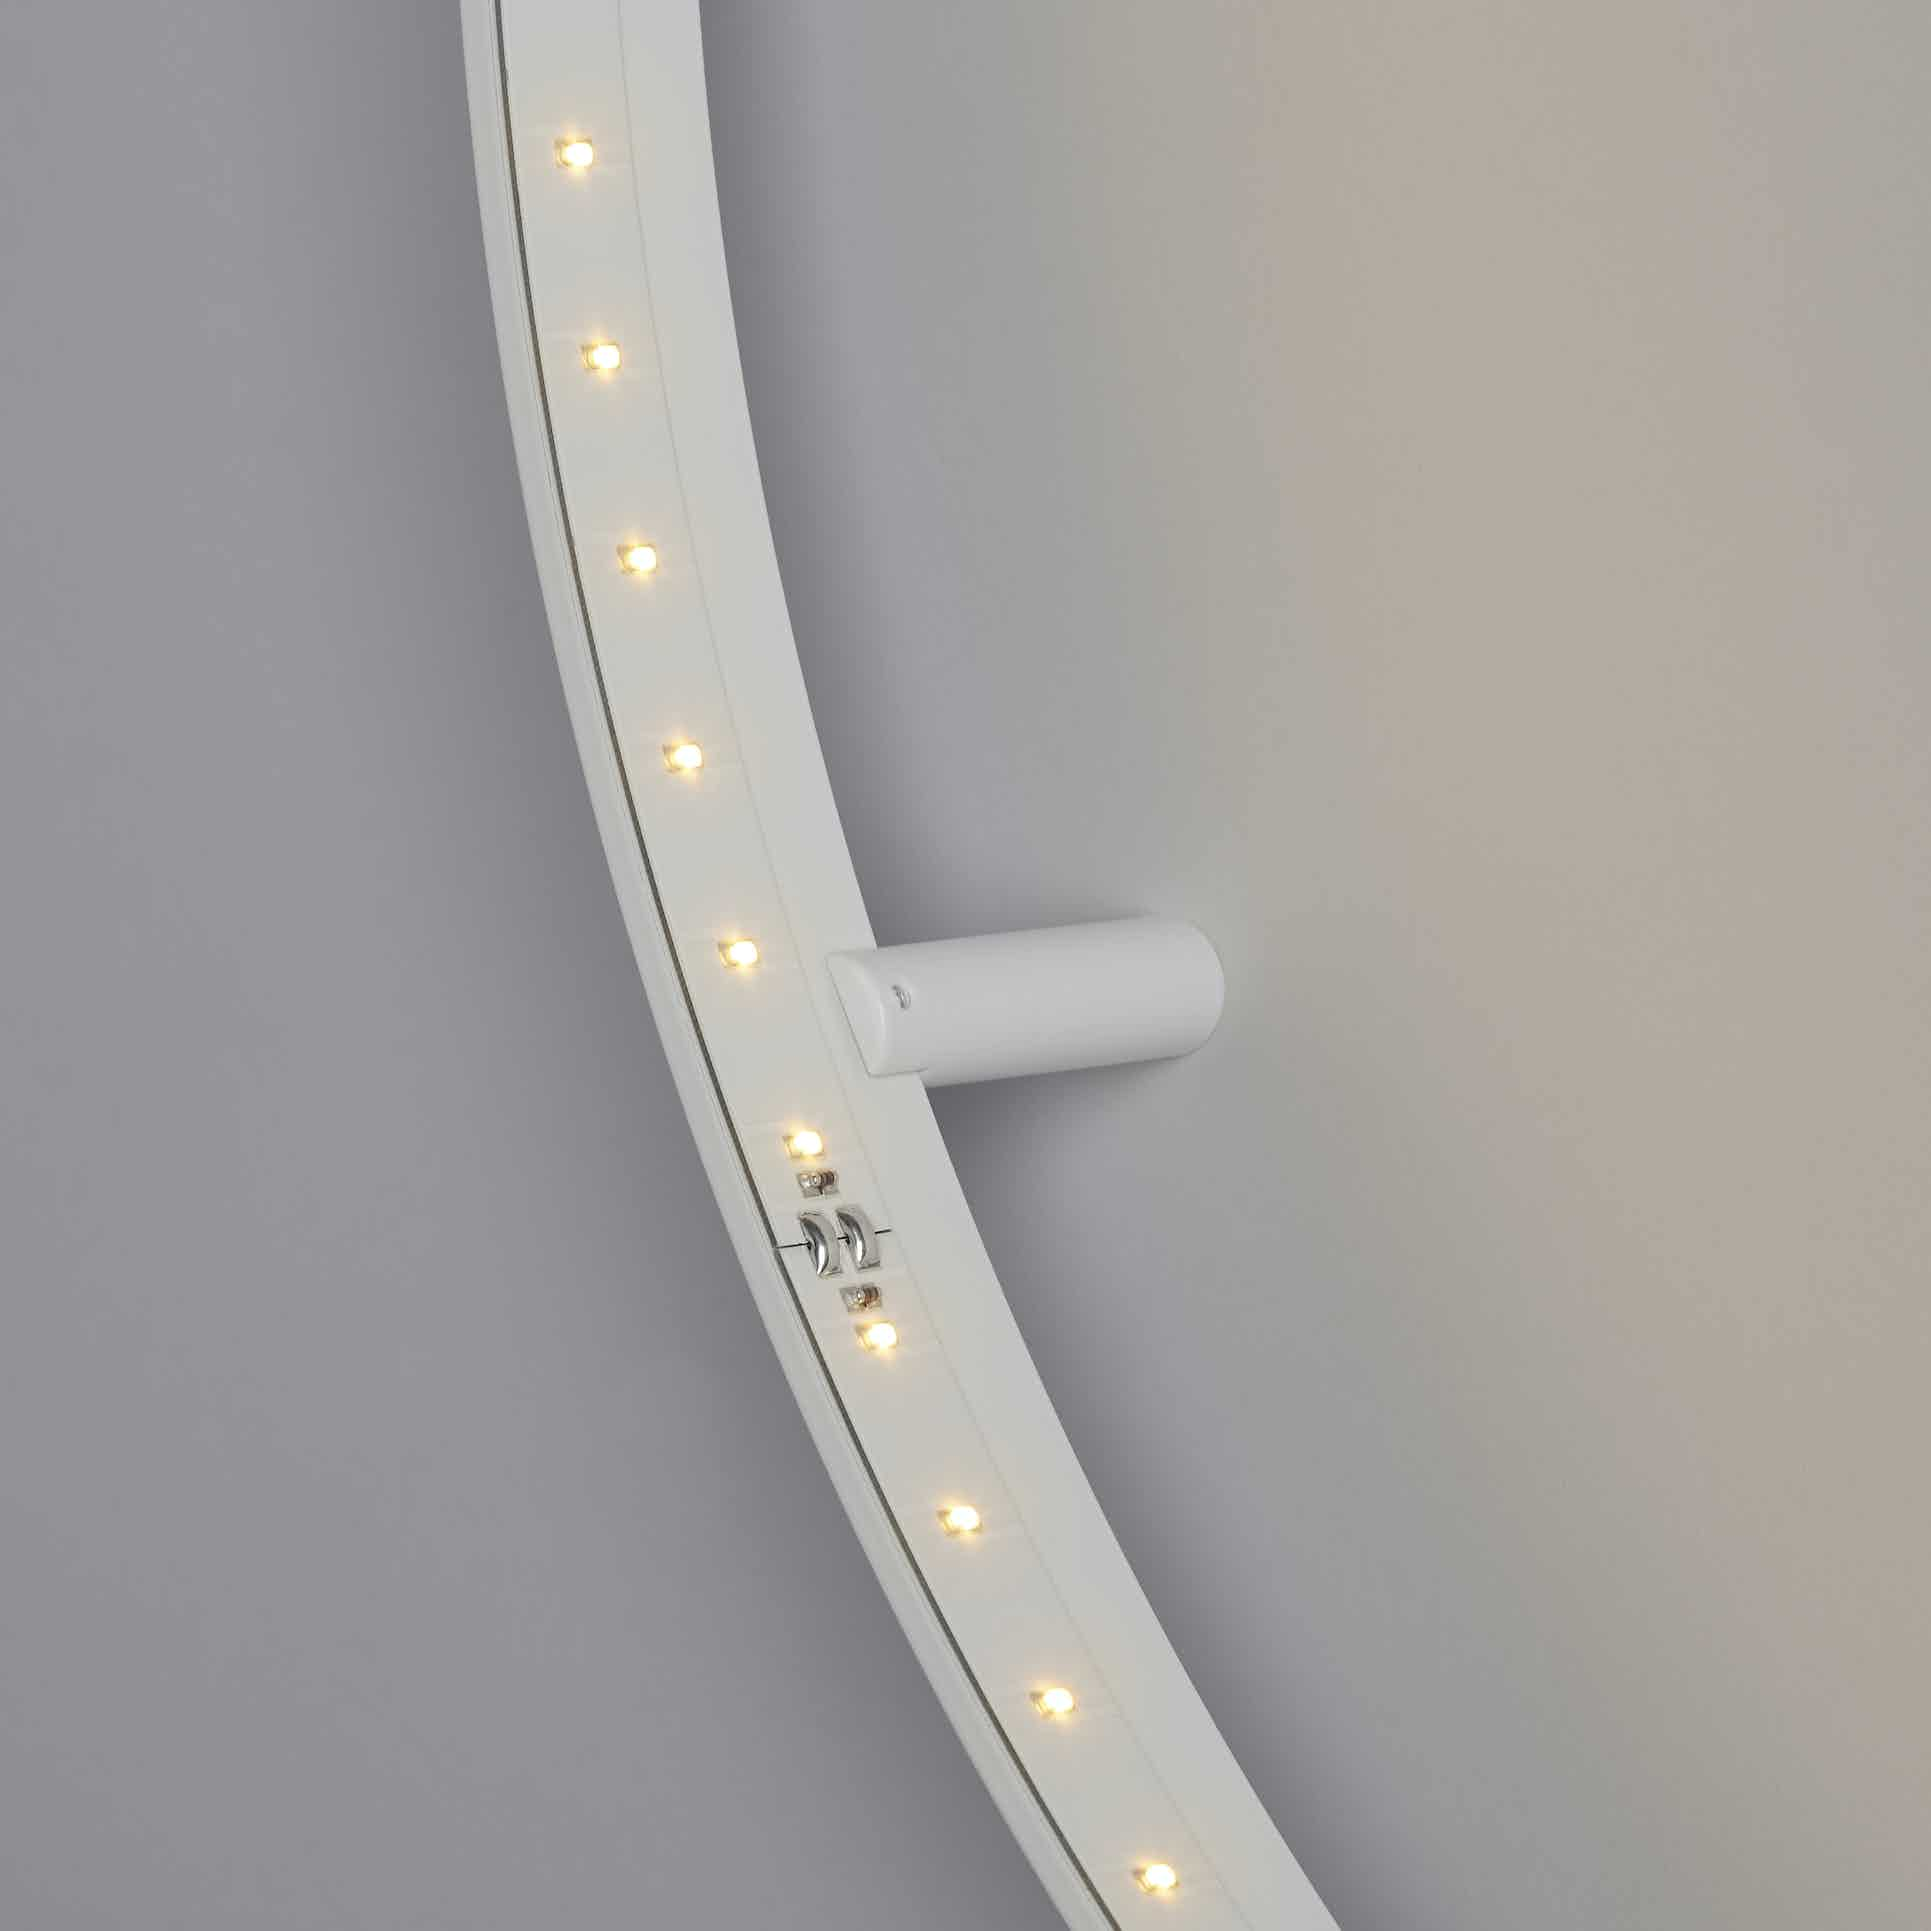 Le-deun-luminaires-curve-60-wall-lamp-white-detail-haute-living